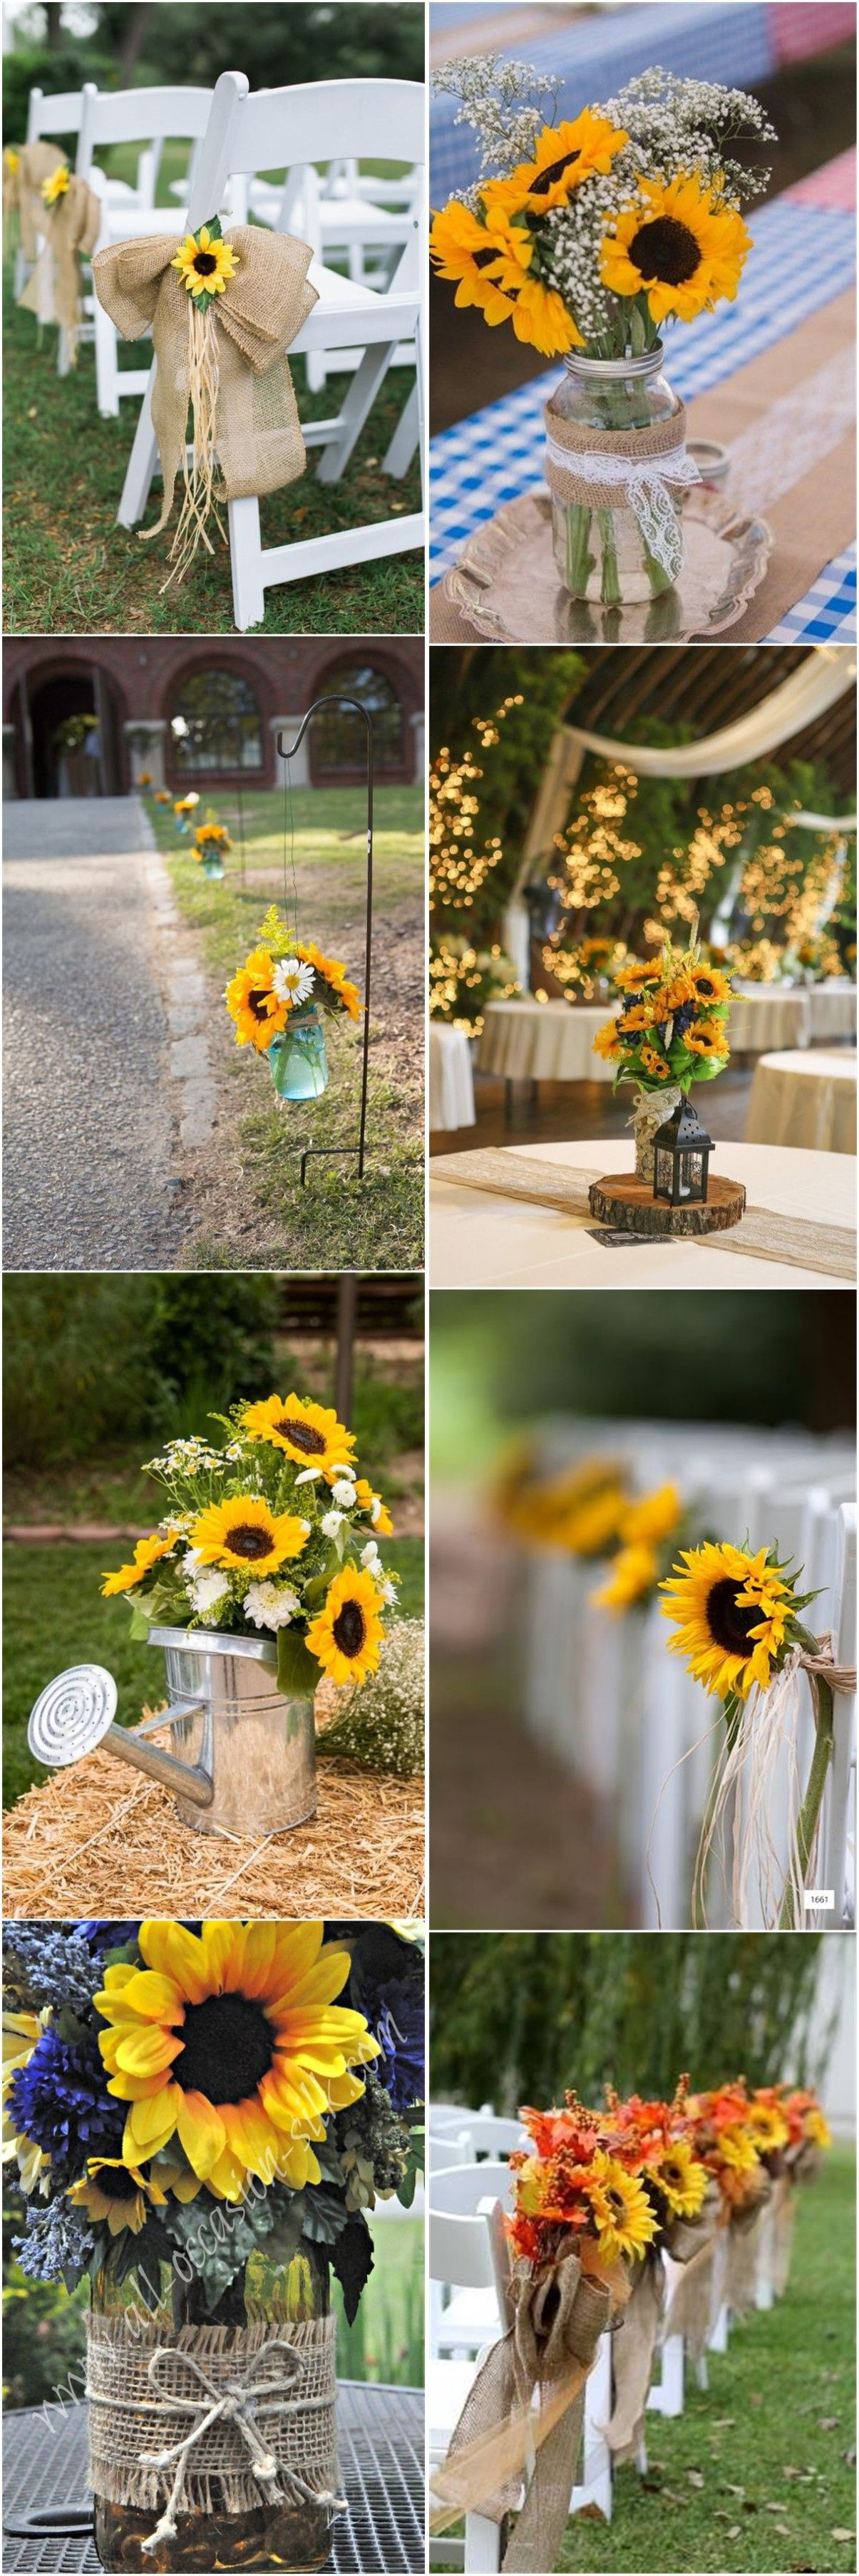 Rustic Weddings 23 Bright Sunflower Wedding Decoration Ideas For Your